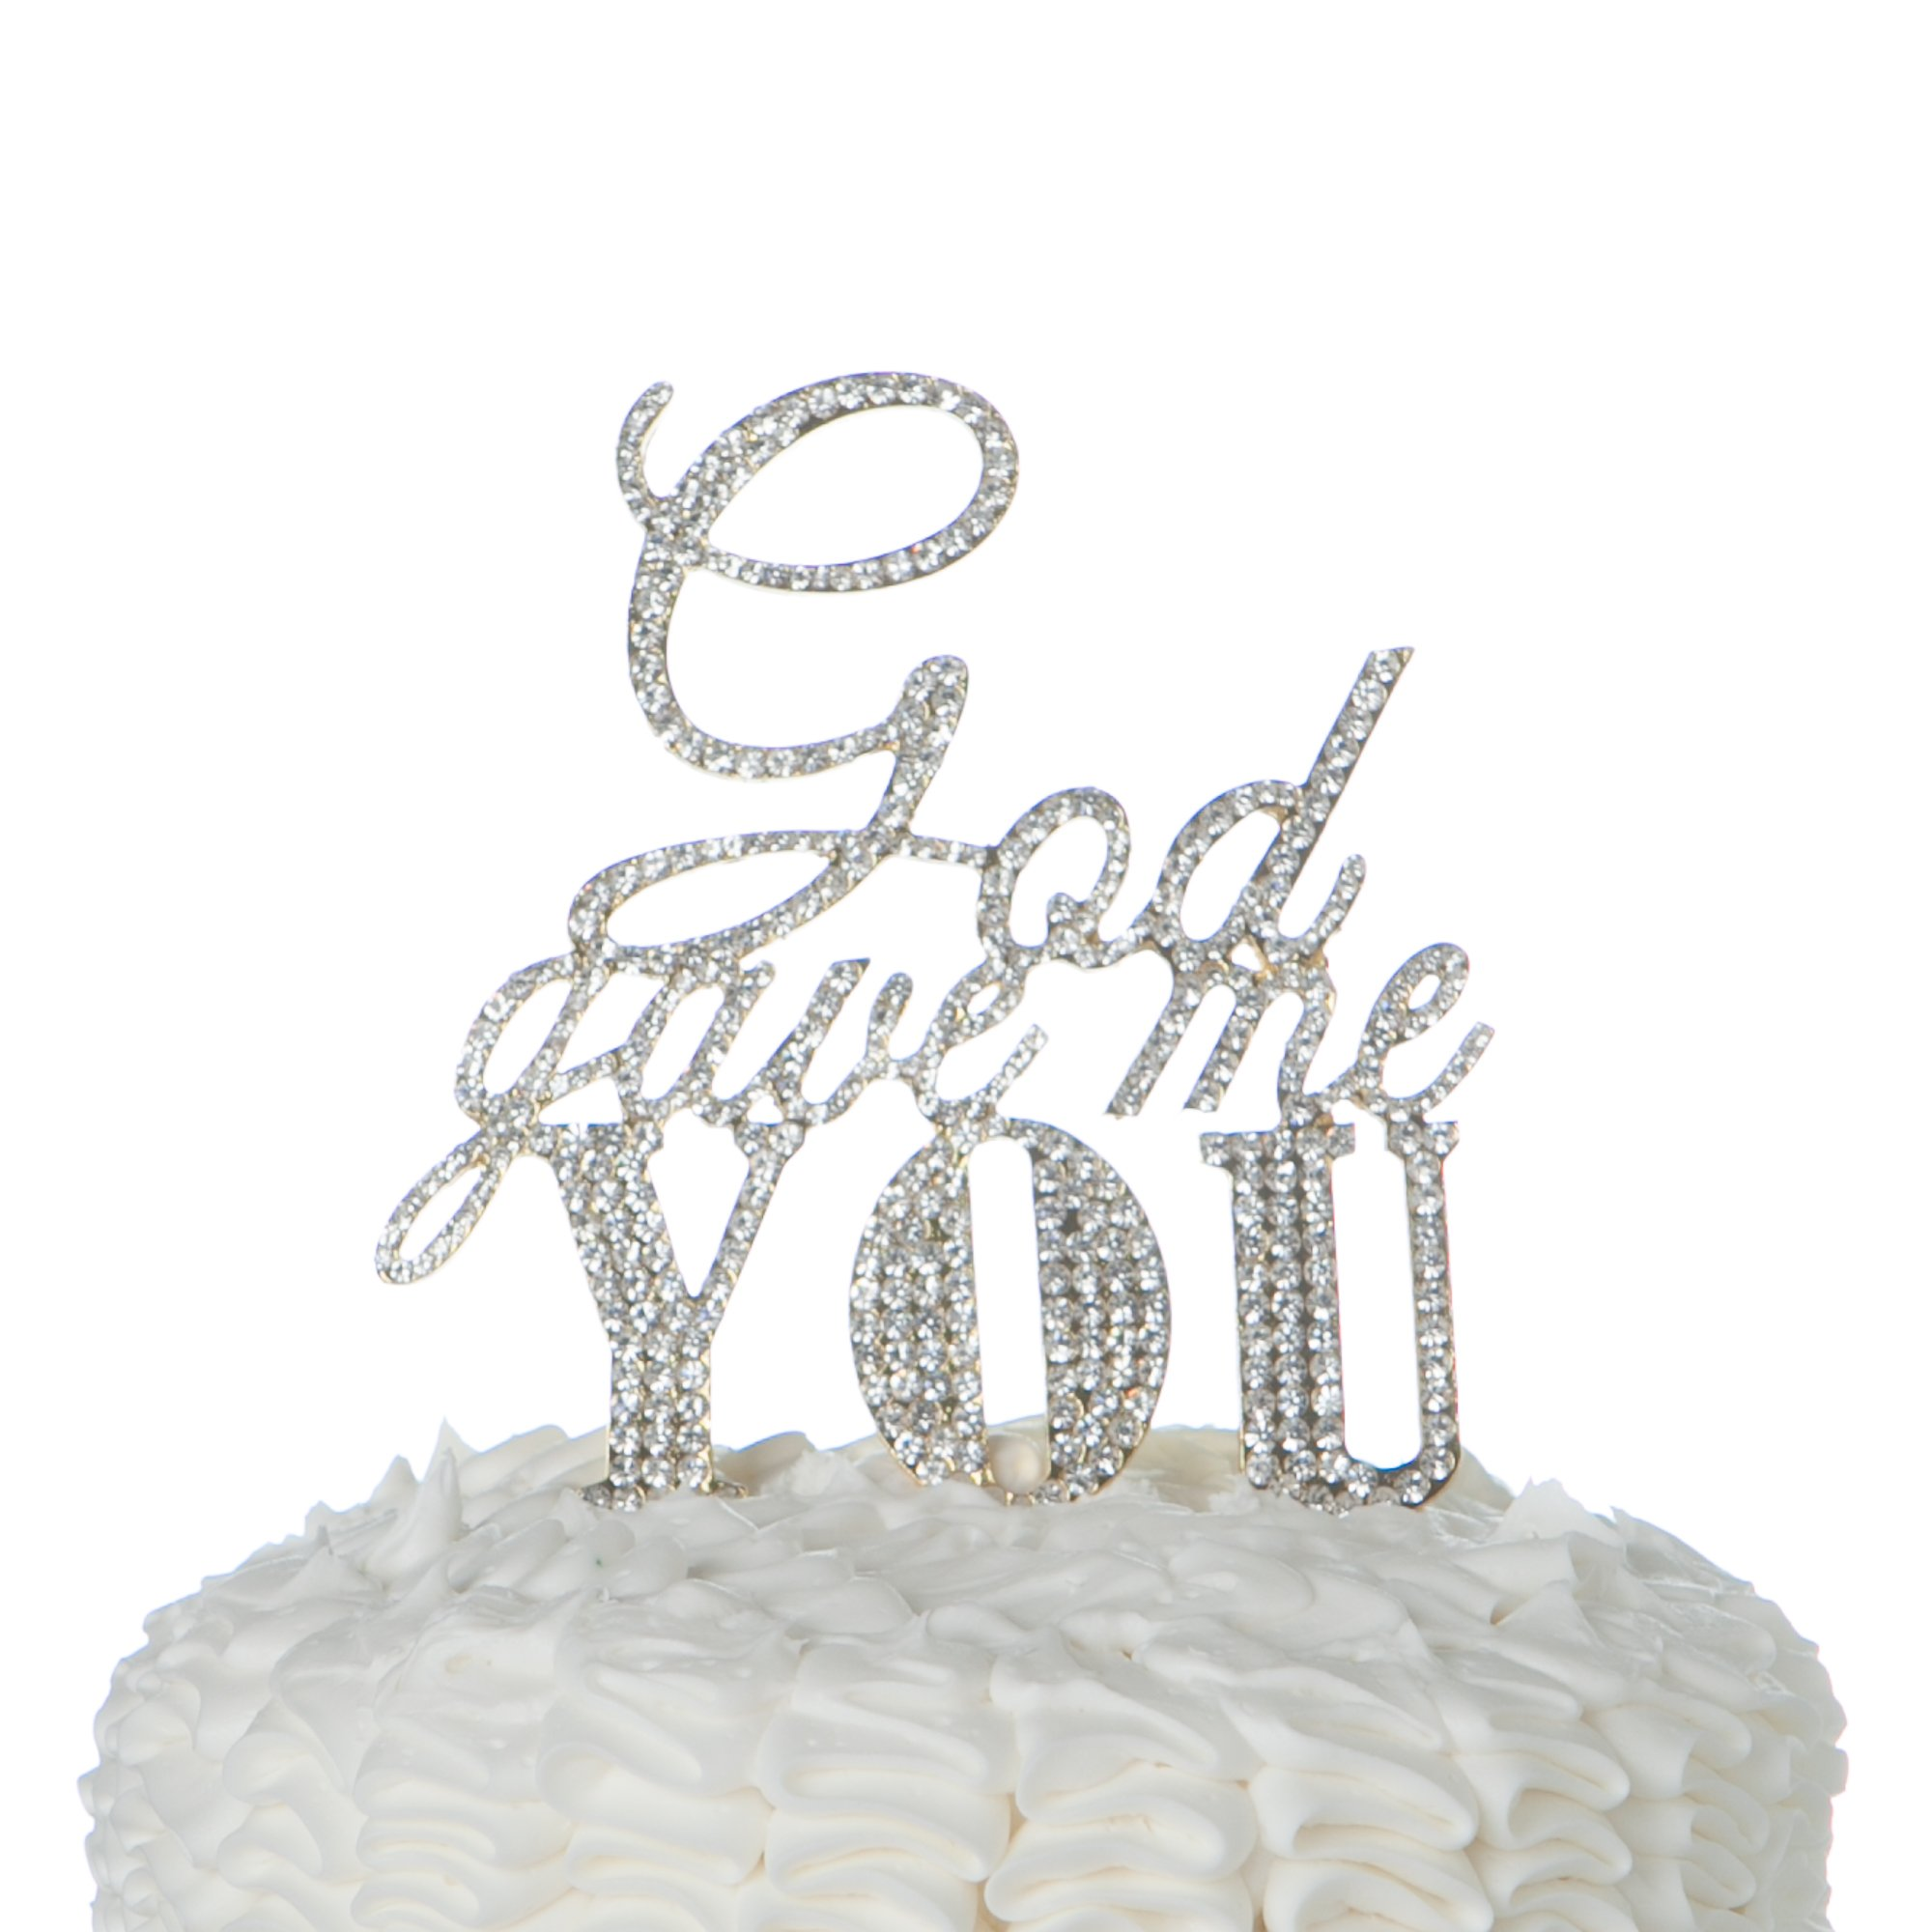 Ella Celebration God Gave Me You Cake Topper for Wedding or Anniversary, Gold Religious Christian Party Decoration